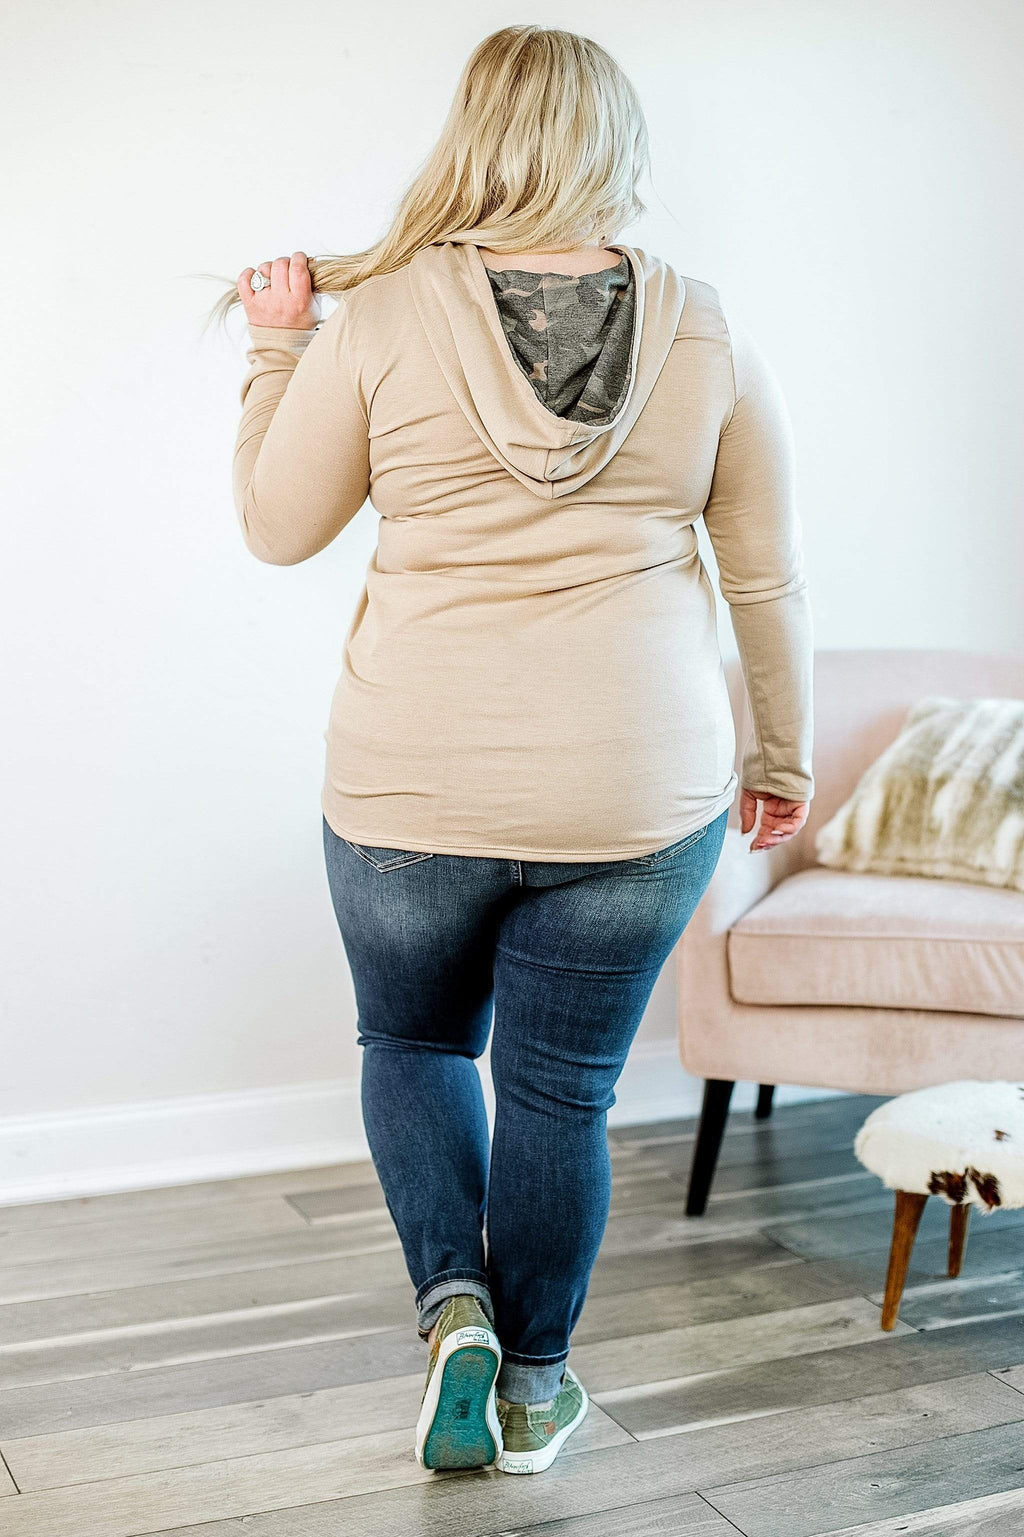 Glitzy Girlz Boutique Oughta Know That Hooded Top | Trendy Plus Size Hooded Top